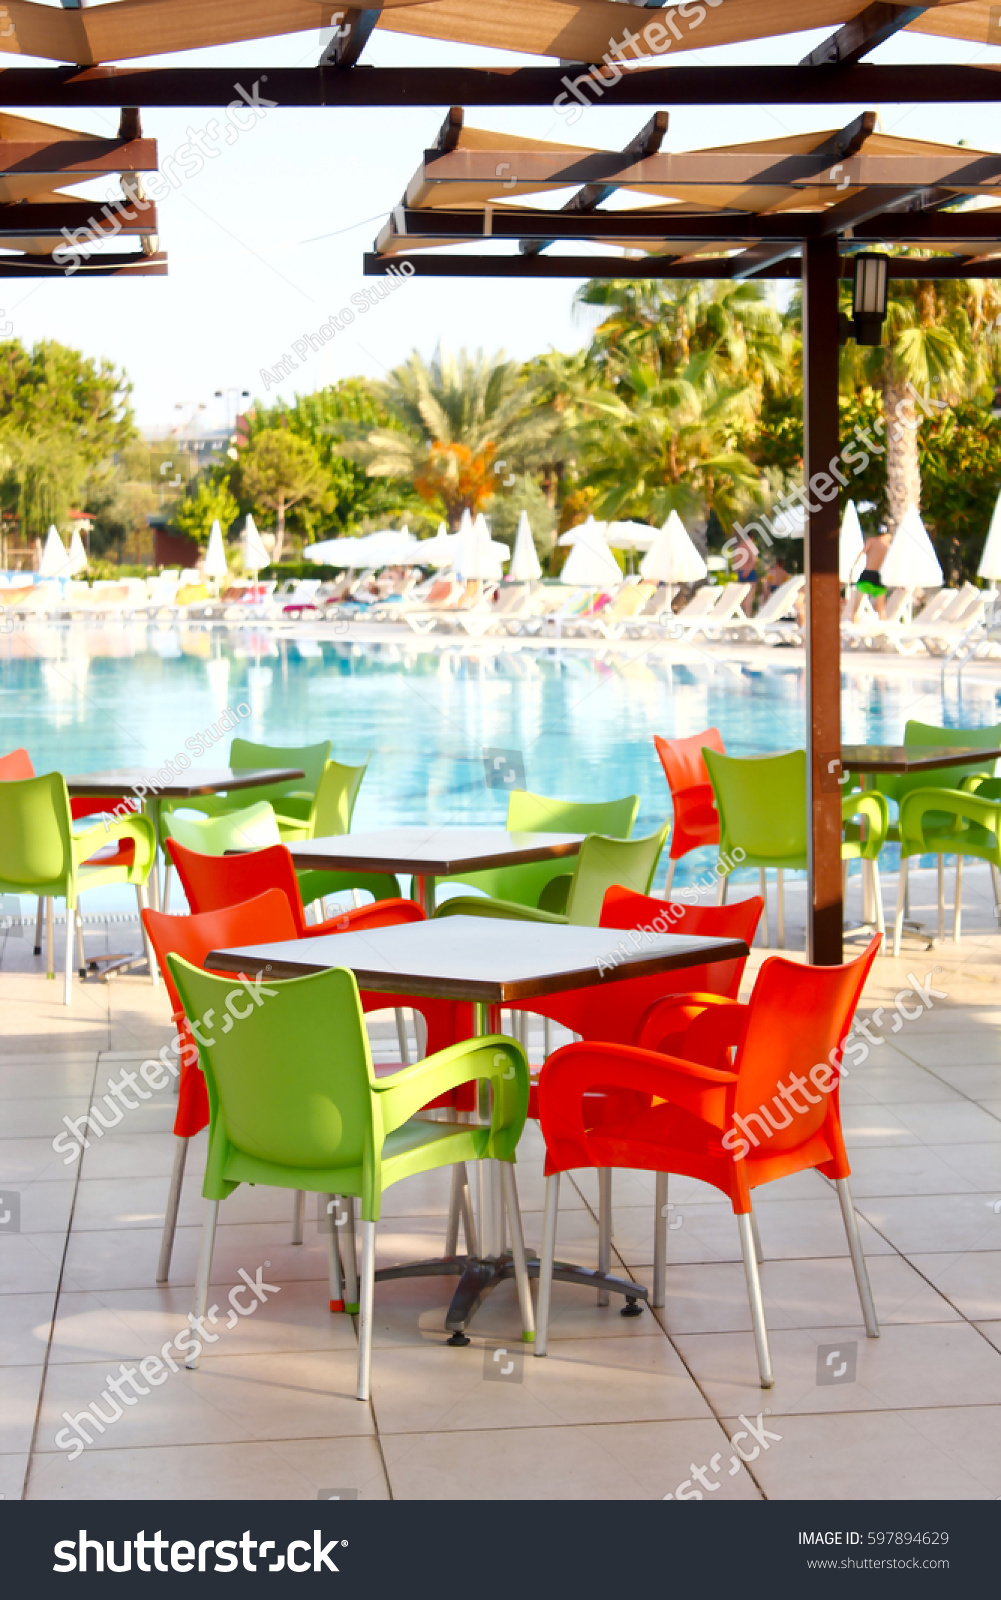 Chairs For Pool Colorful Plastic Tables Chairs Near Pool Stock Photo Edit Now